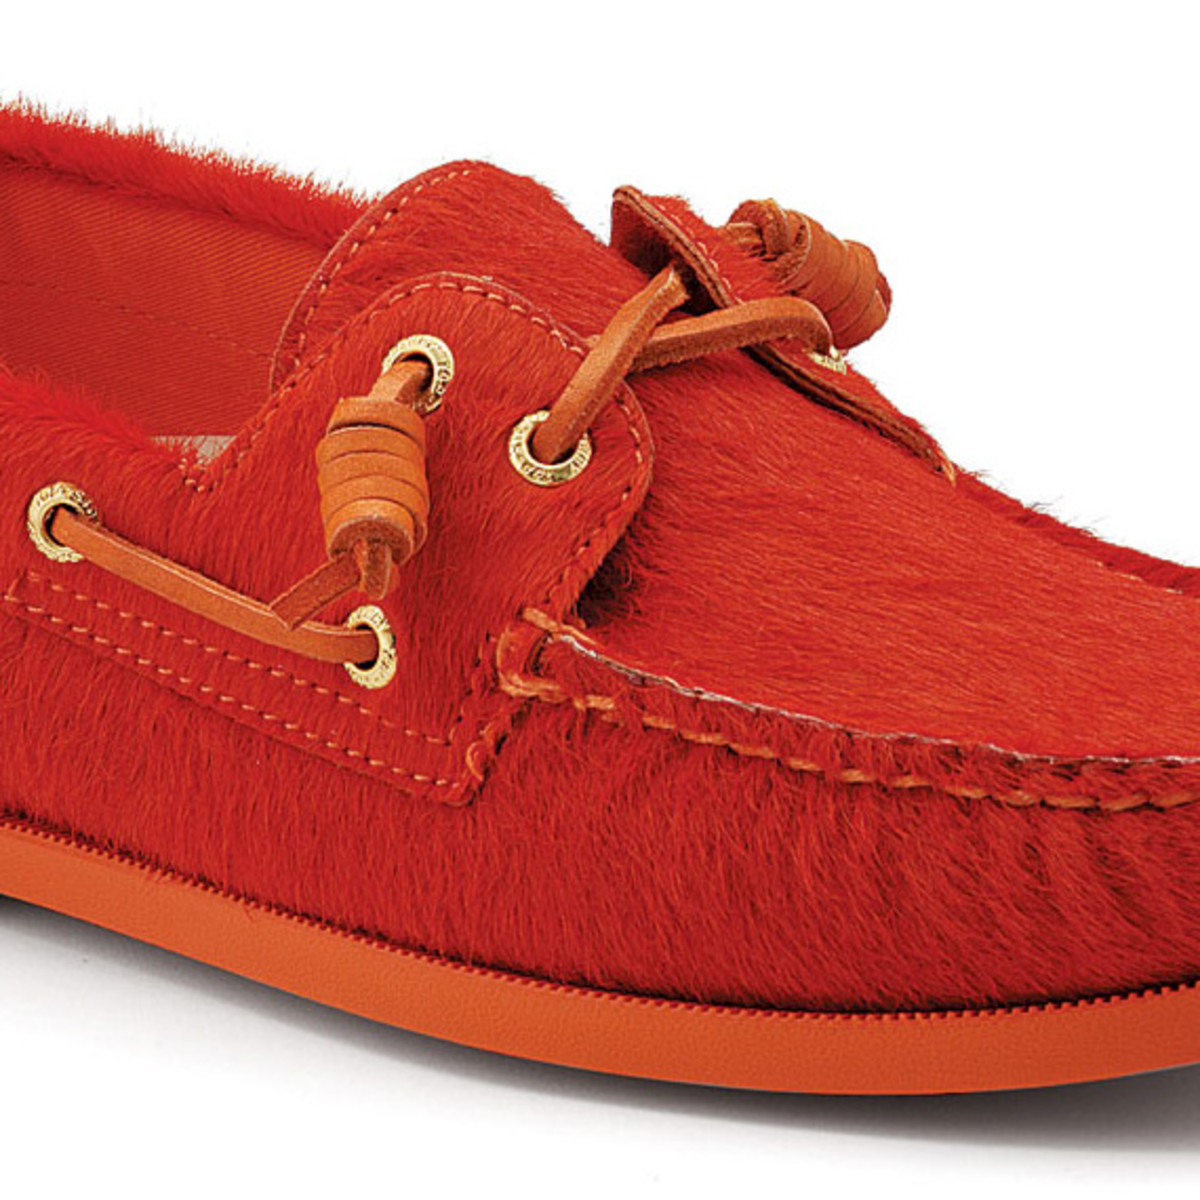 jeffrey-x-sperry-top-sider-authentic-original-barrel-lace-boat-shoes-15